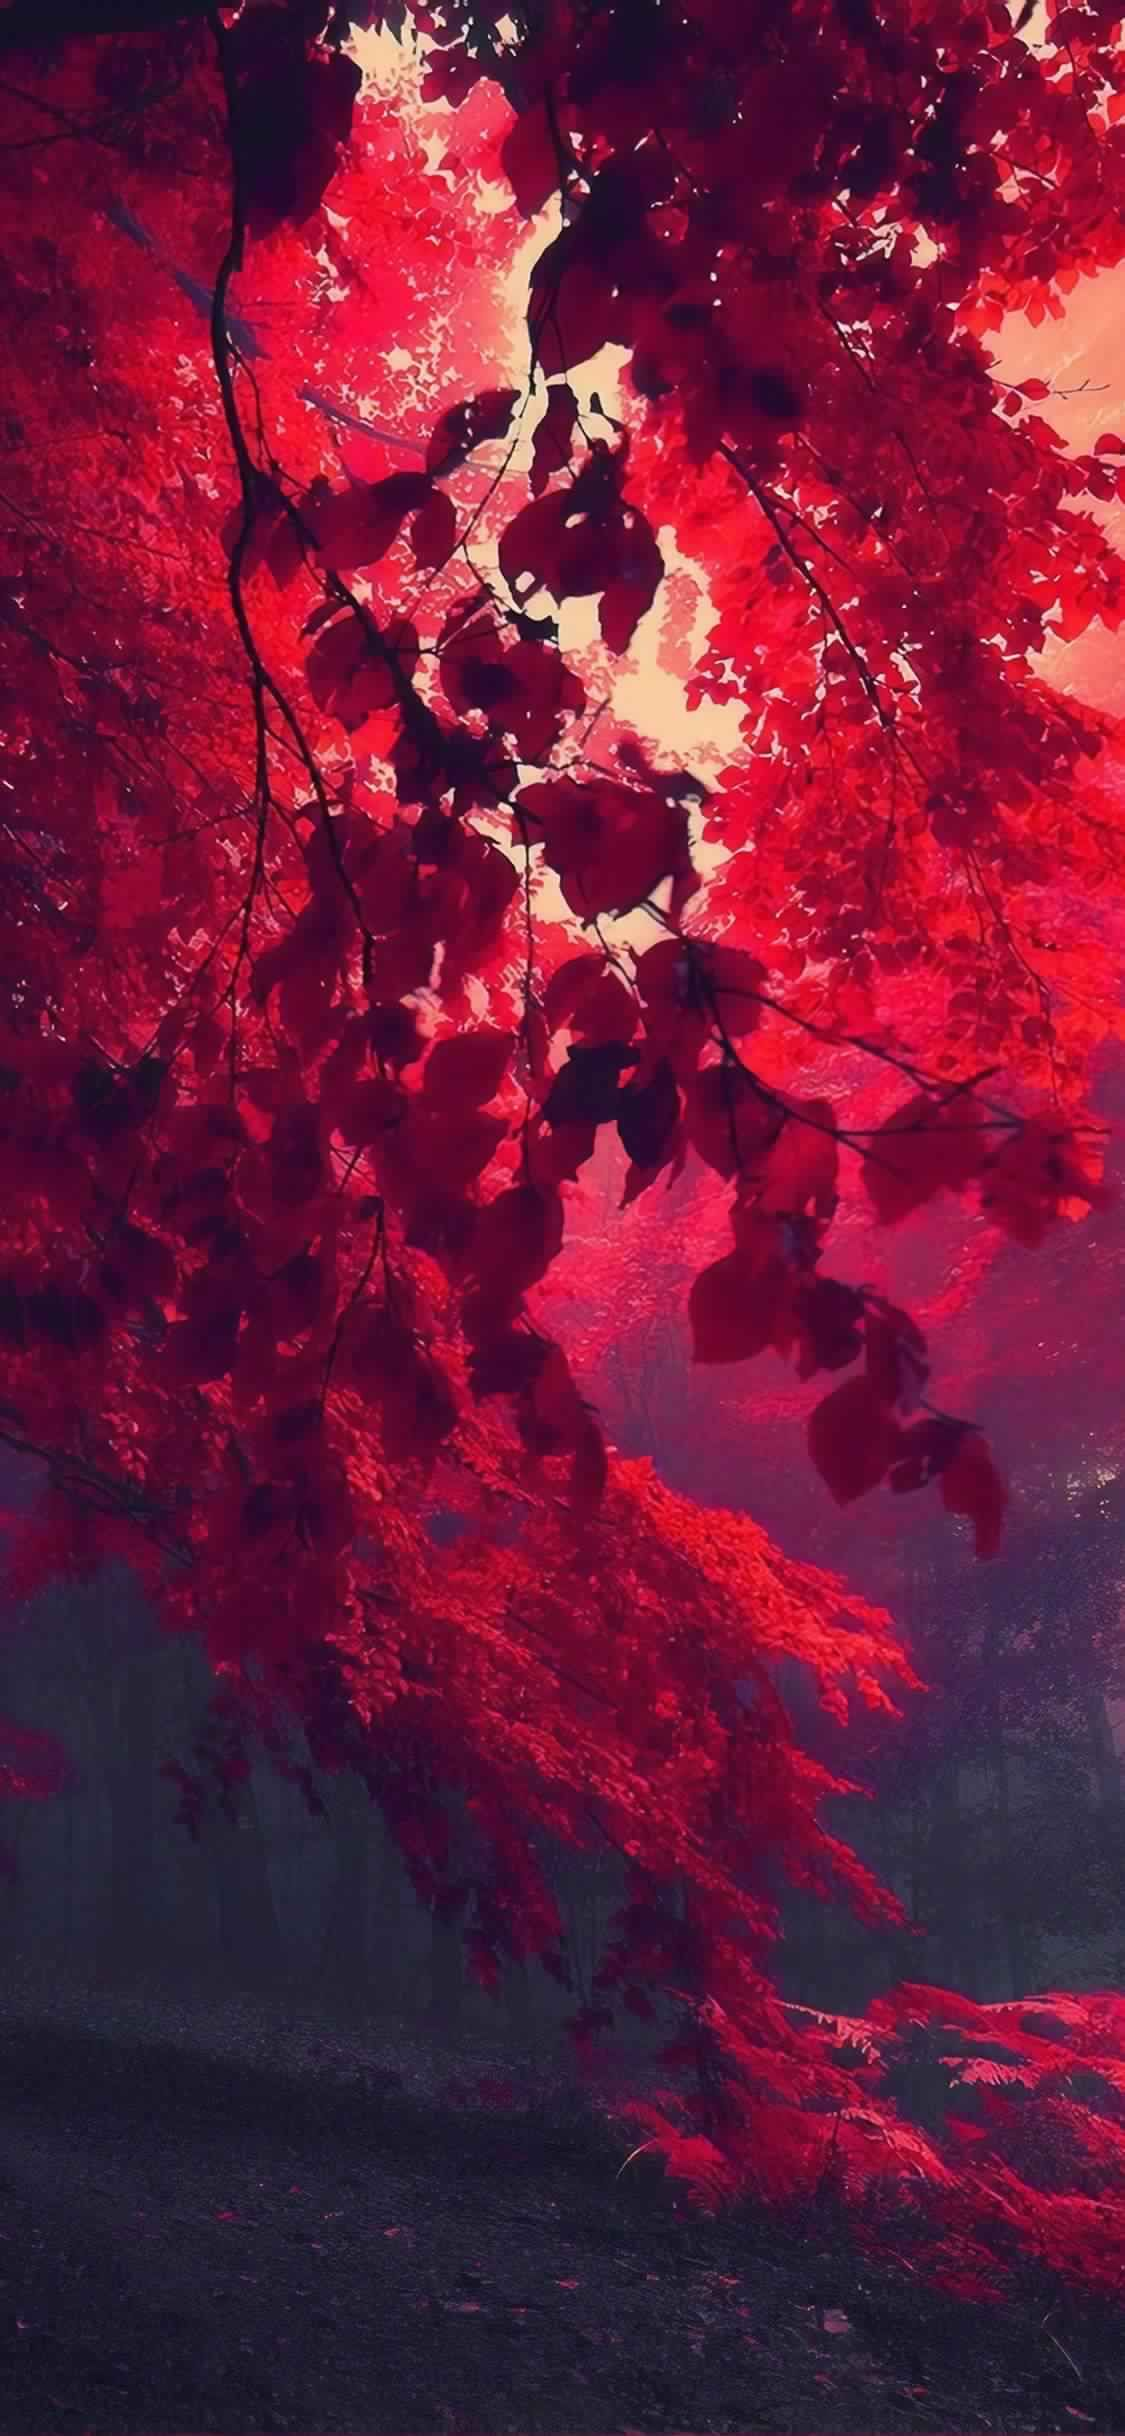 Iphone 11 Wallpaper Red Autumn 4k Hd Download Free Hd Wallpaper Screensavers Dw Gaming Com Download Free Hd Wallpapers Https Ift Tt 2nb3kaz Htt ศ ลปะ